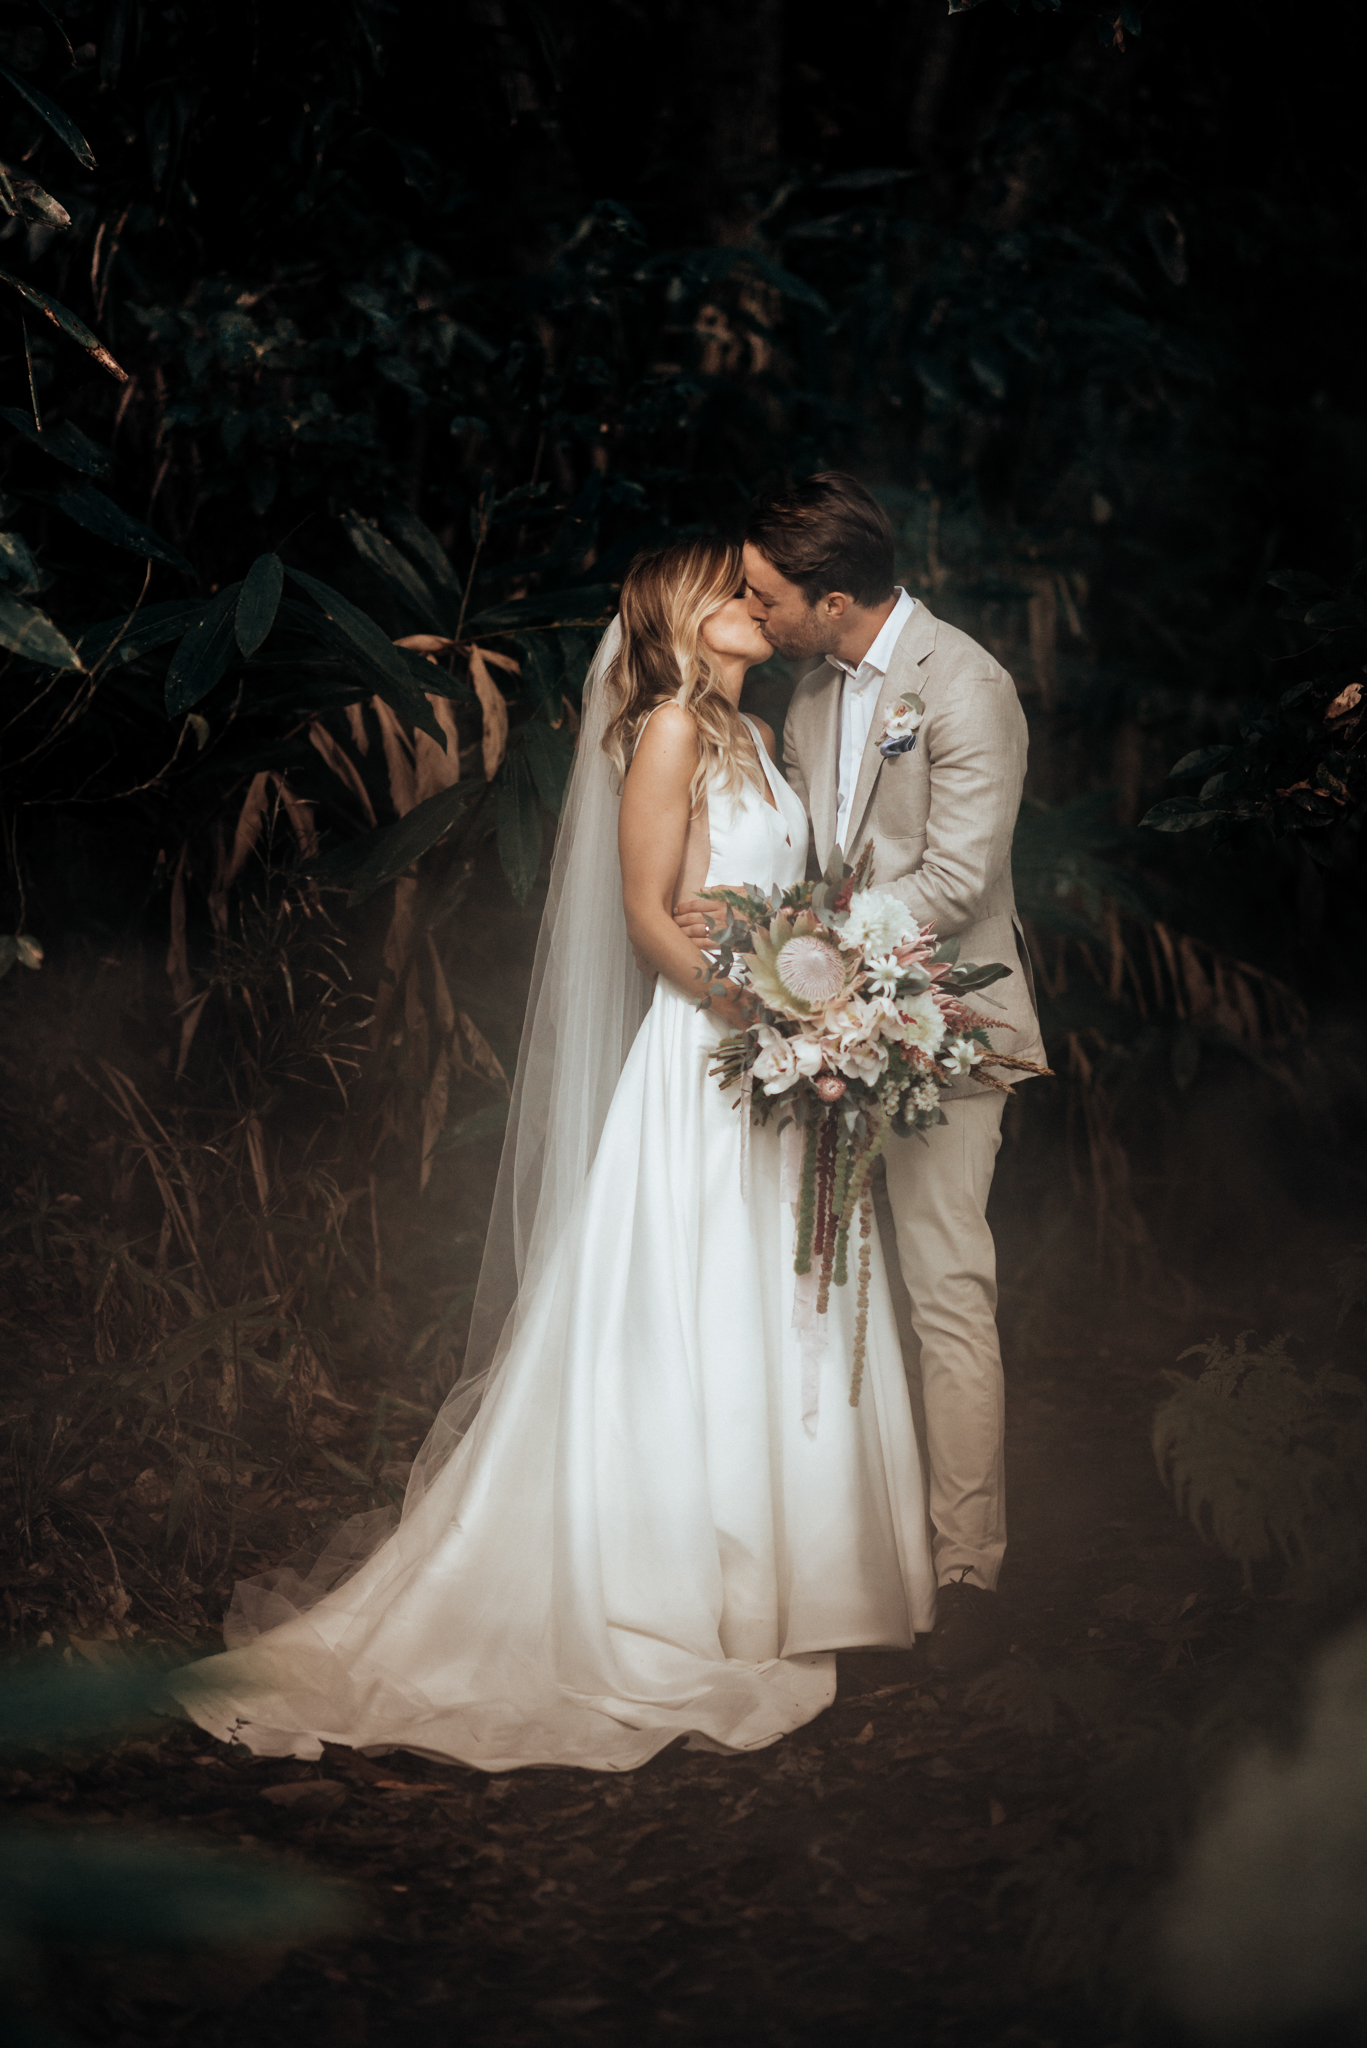 Green Smoke Bomb in the Rainforest for this beautiful Byron Bay wedding